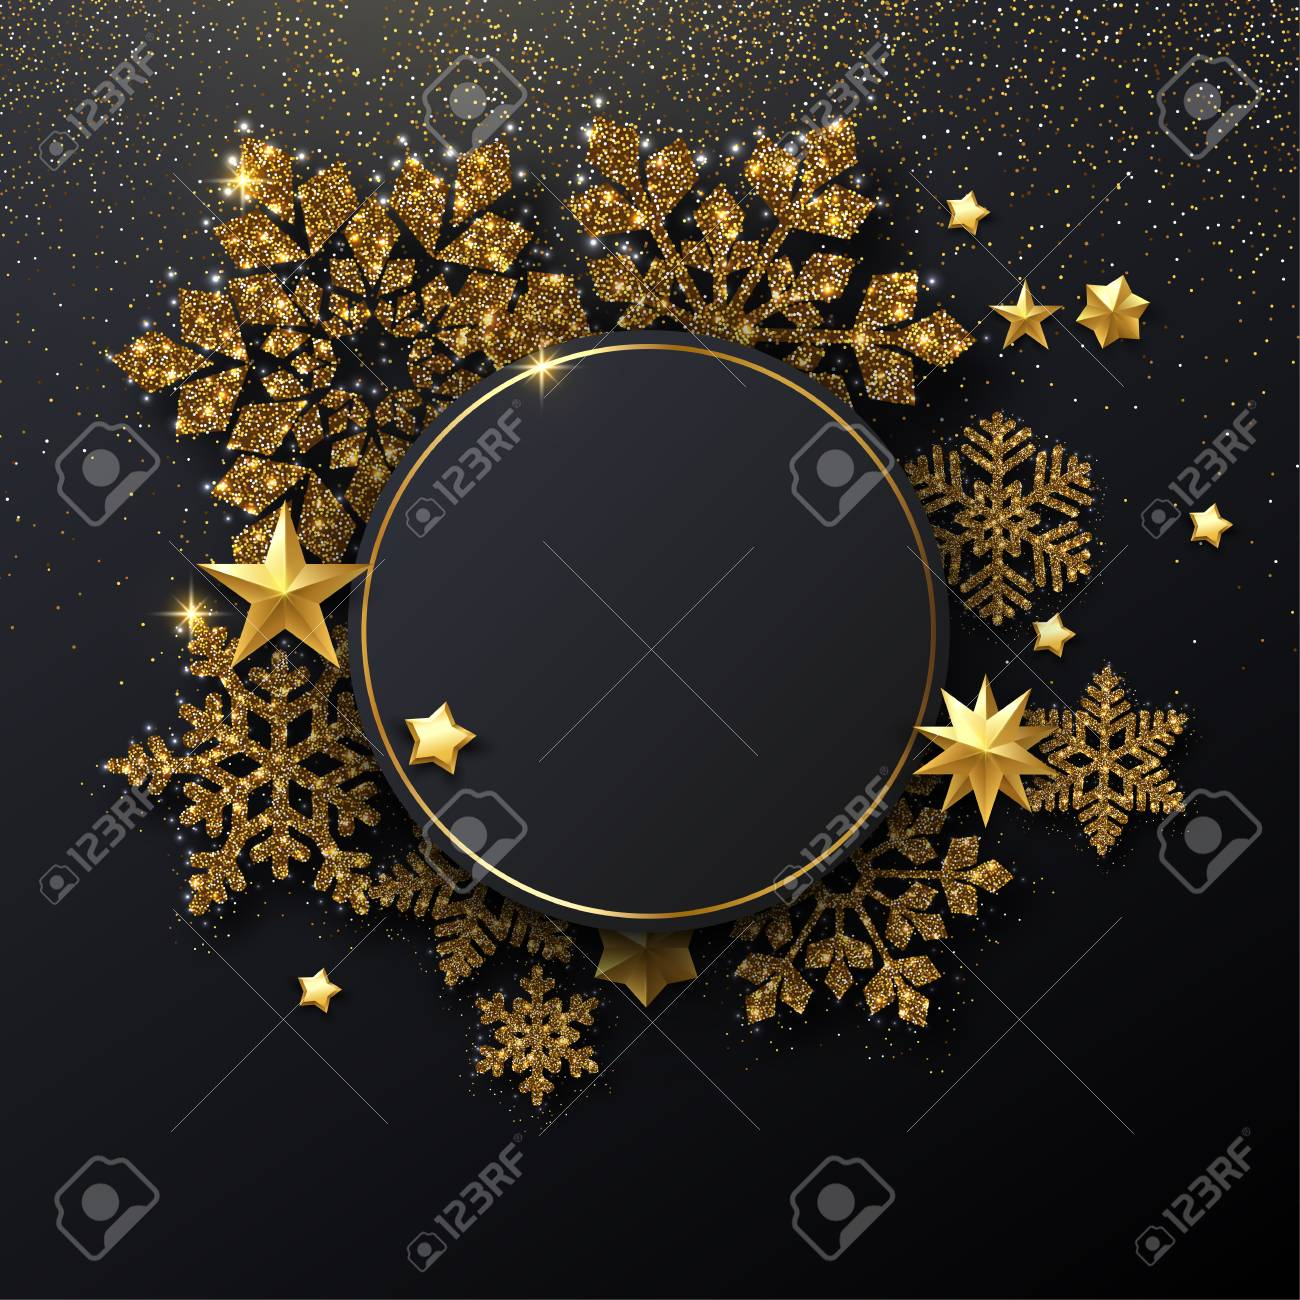 Christmas and New Year festive shiny card template with round frame, golden snowflakes and stars. Vector background. - 127730987